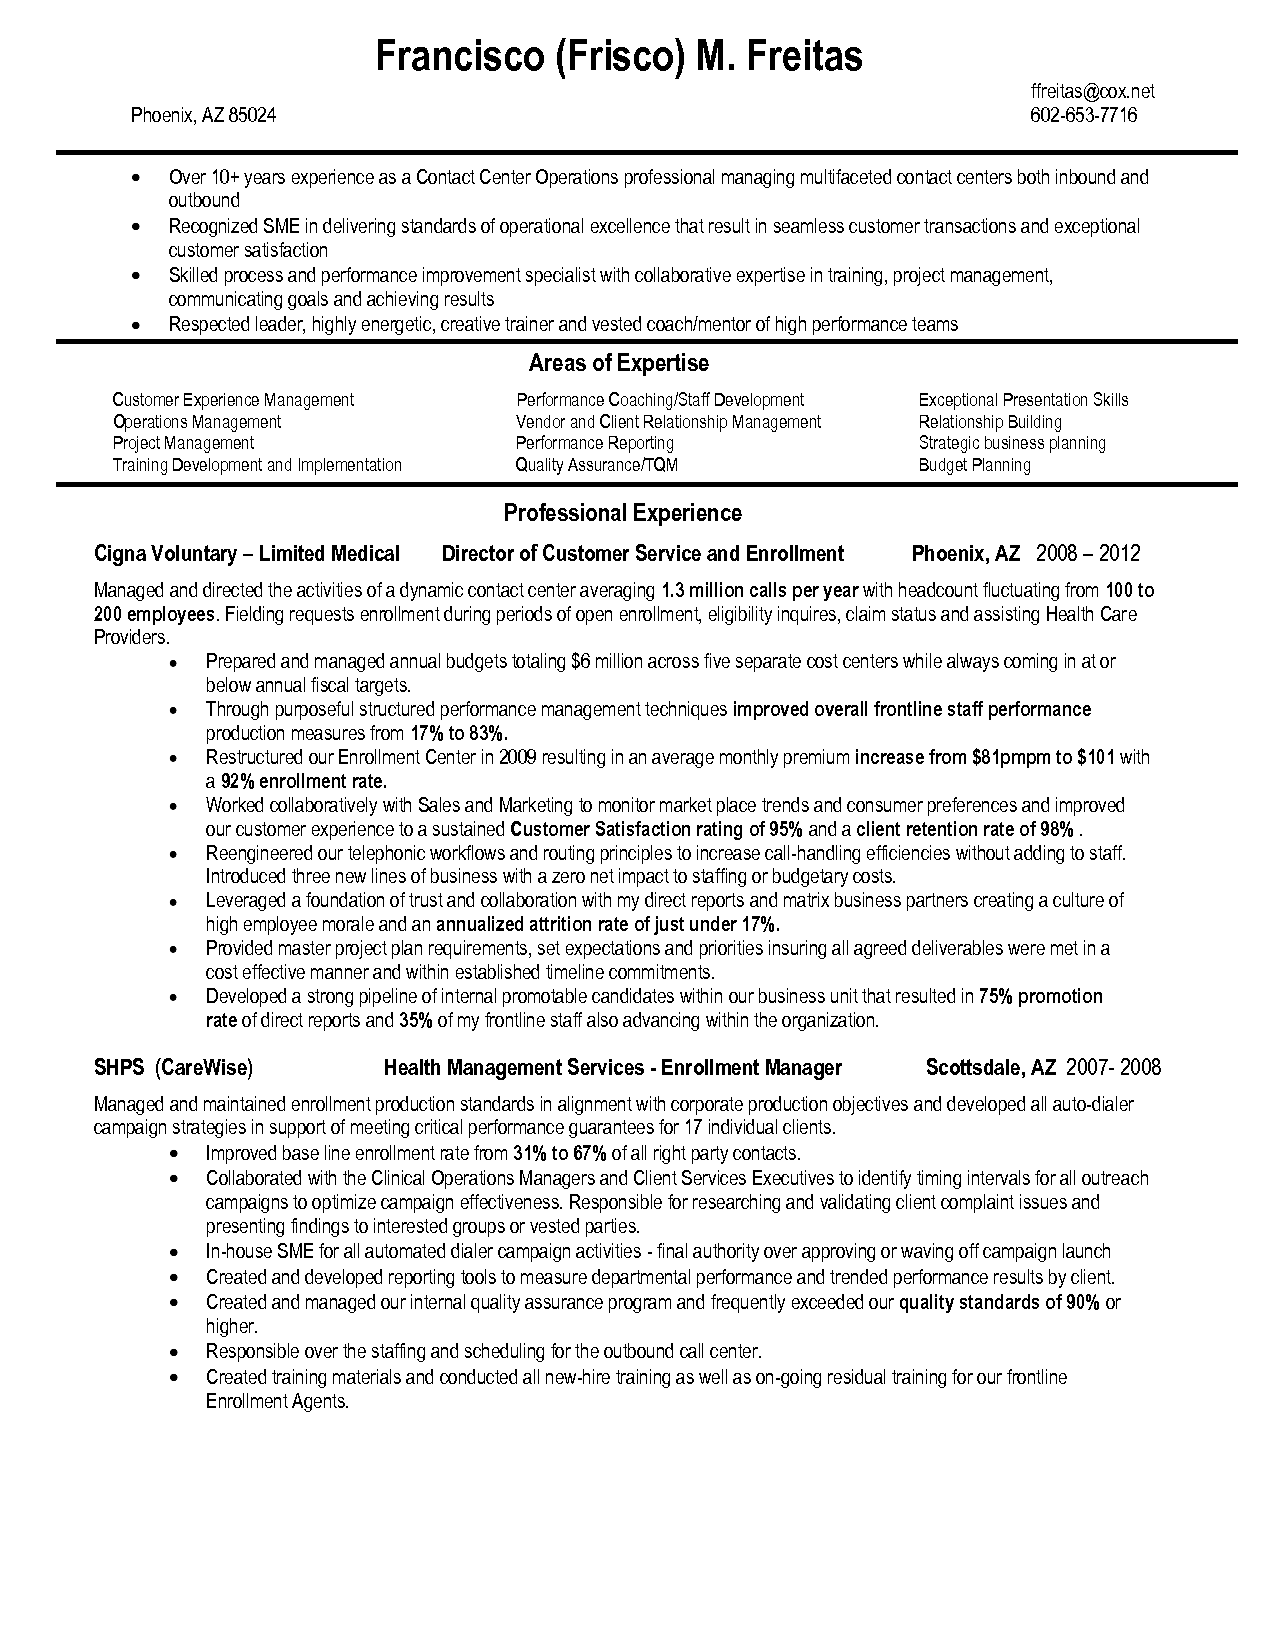 Insurance Claims Representative Resume Sample    Http://www.resumecareer.info/insurance Claims Representative Resume Sample  16/